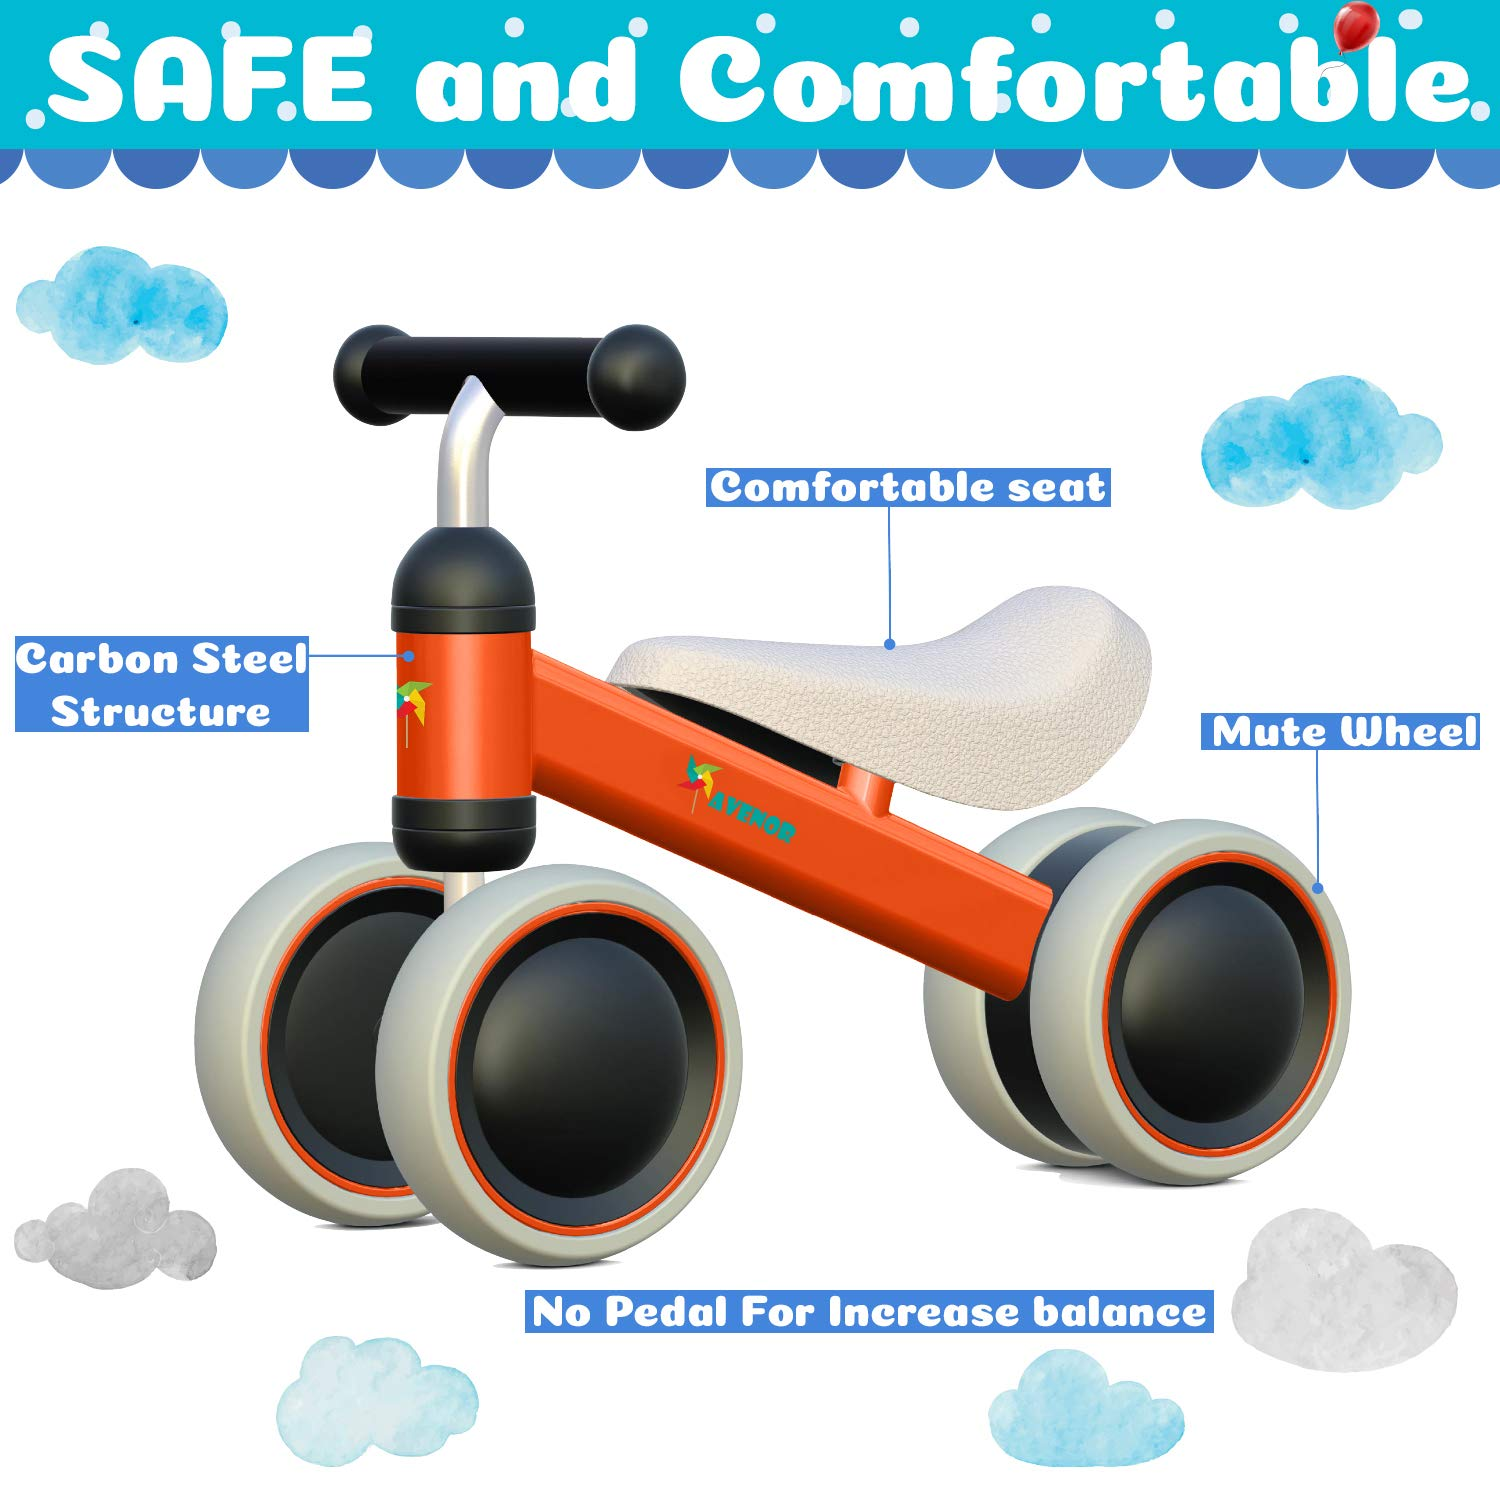 Avenor Baby Balance Bike - Baby Bicycle for 6-24 Months, Sturdy Balance Bike for 1 Year Old, Perfect as First Bike or Birthday Gift, Safe Riding Toys for 1 Year Old Boy Girl Ideal Baby Bike (Orange) by Avenor (Image #3)